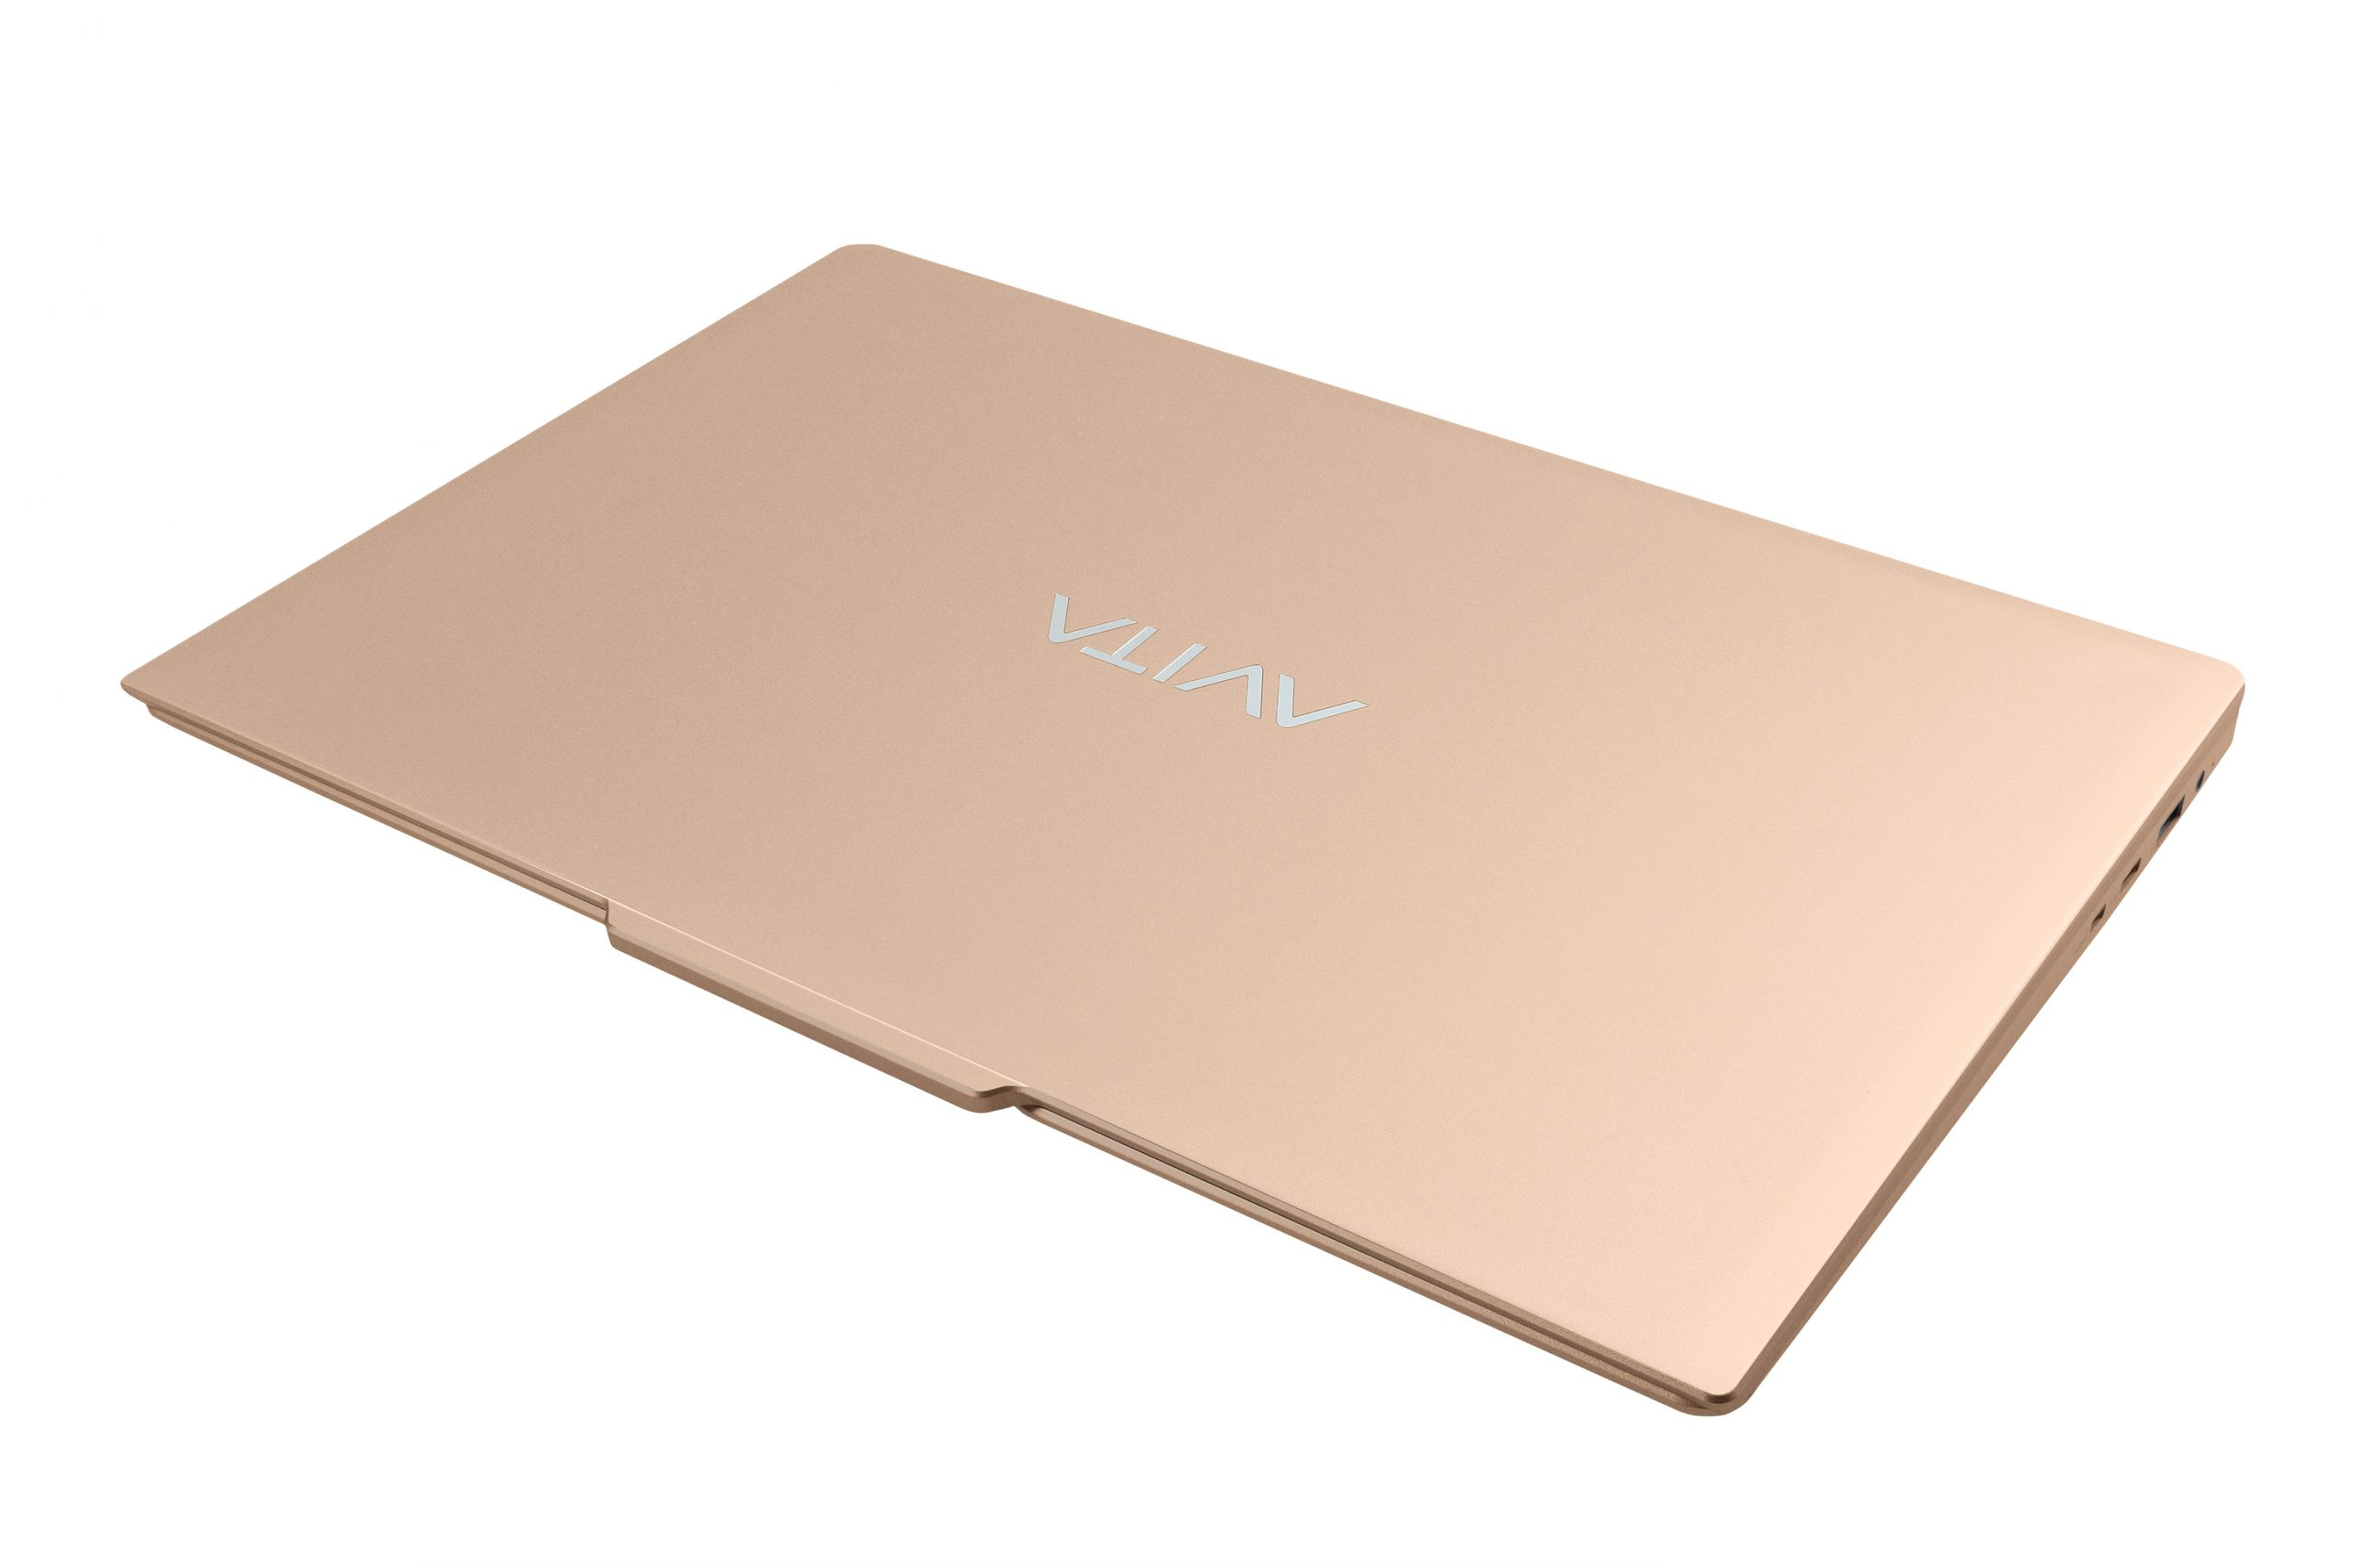 https://t2qwifi.com/wp-content/uploads/2020/07/avita_laptop_2020_angle5_0088_high_champagne-gold-1-scaled.jpg